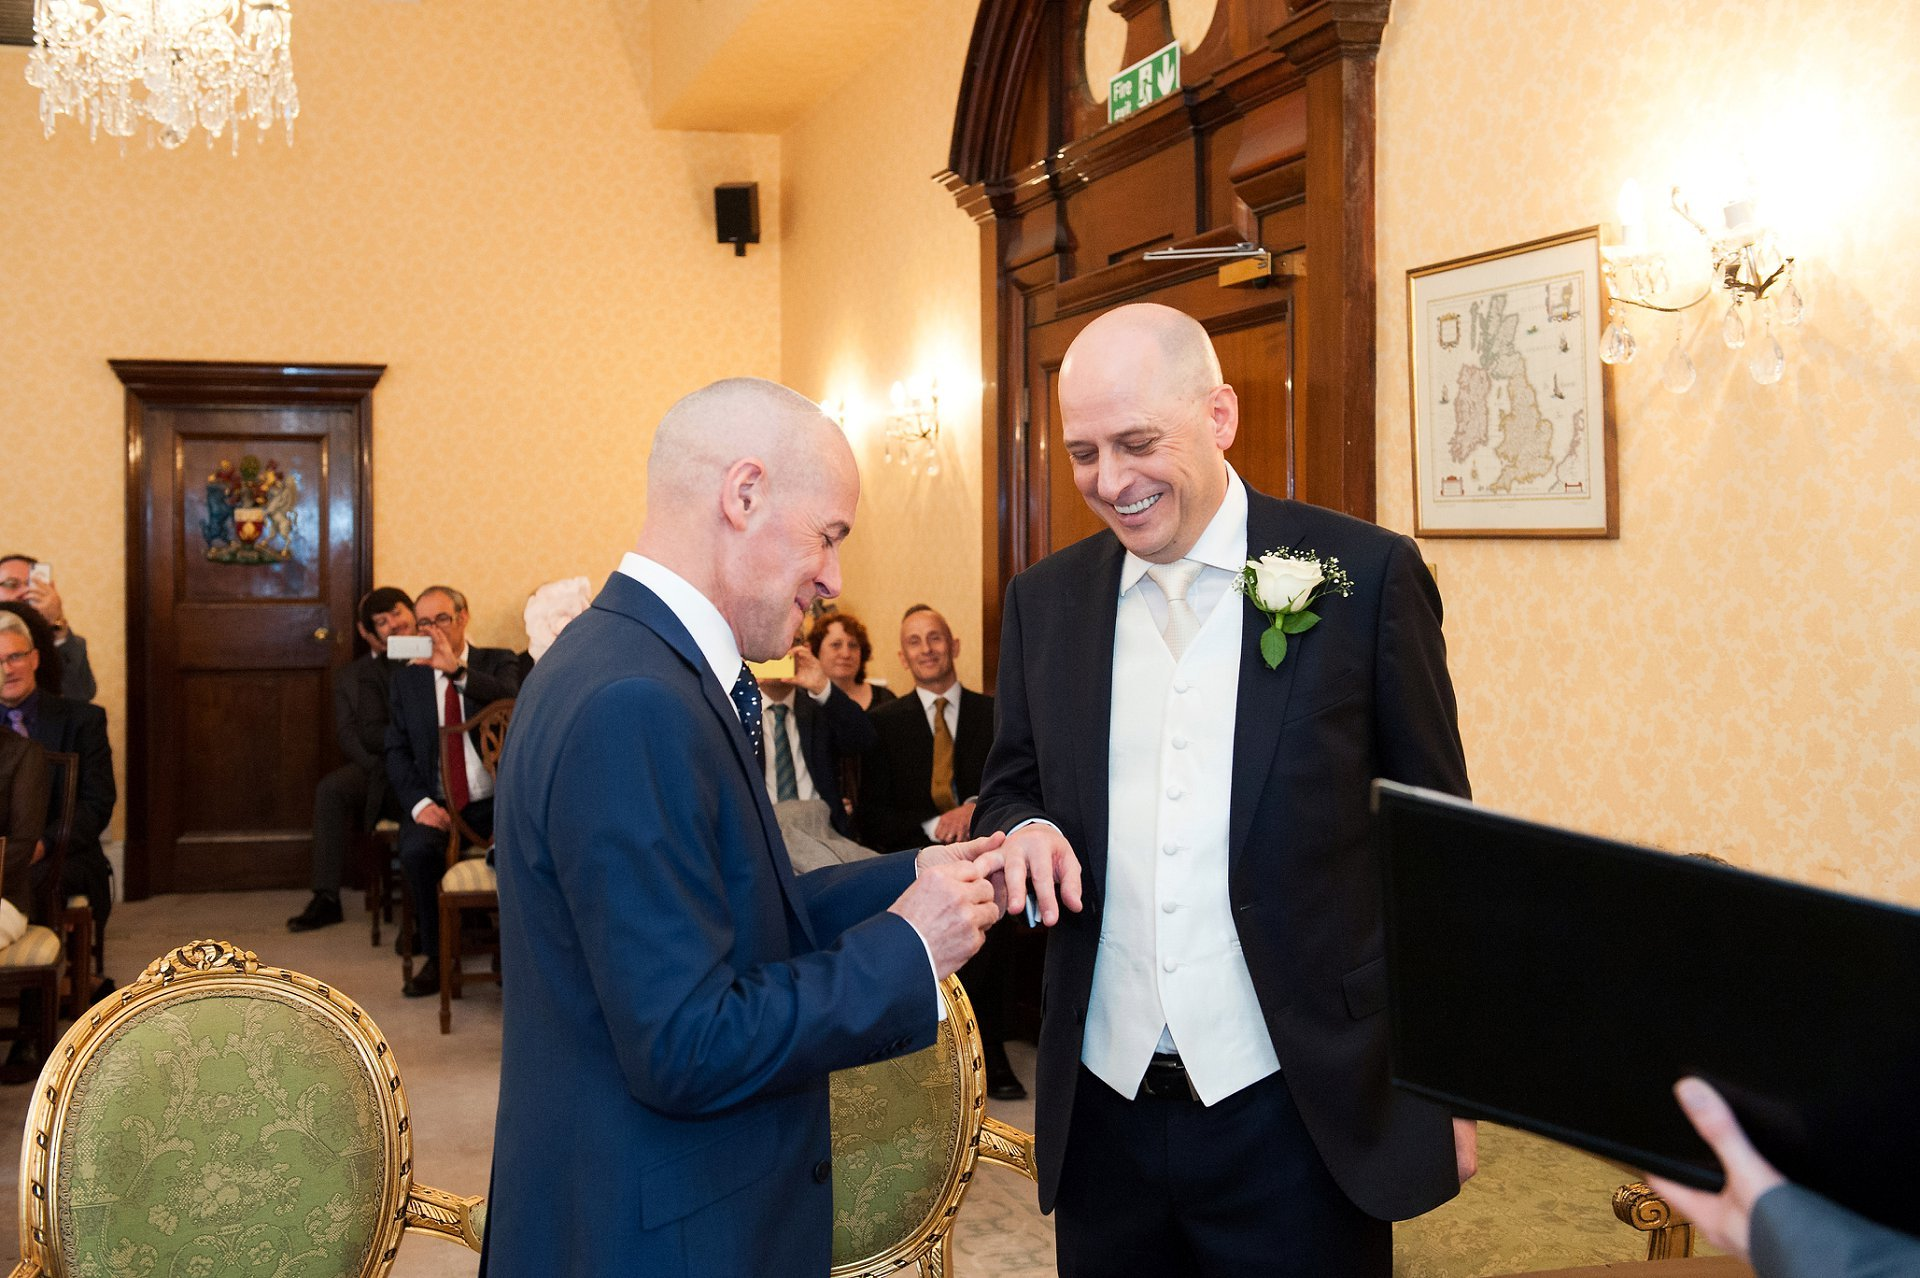 George places the ring of Jose's finger during the ring exchange in Chelsea Old Town Hall